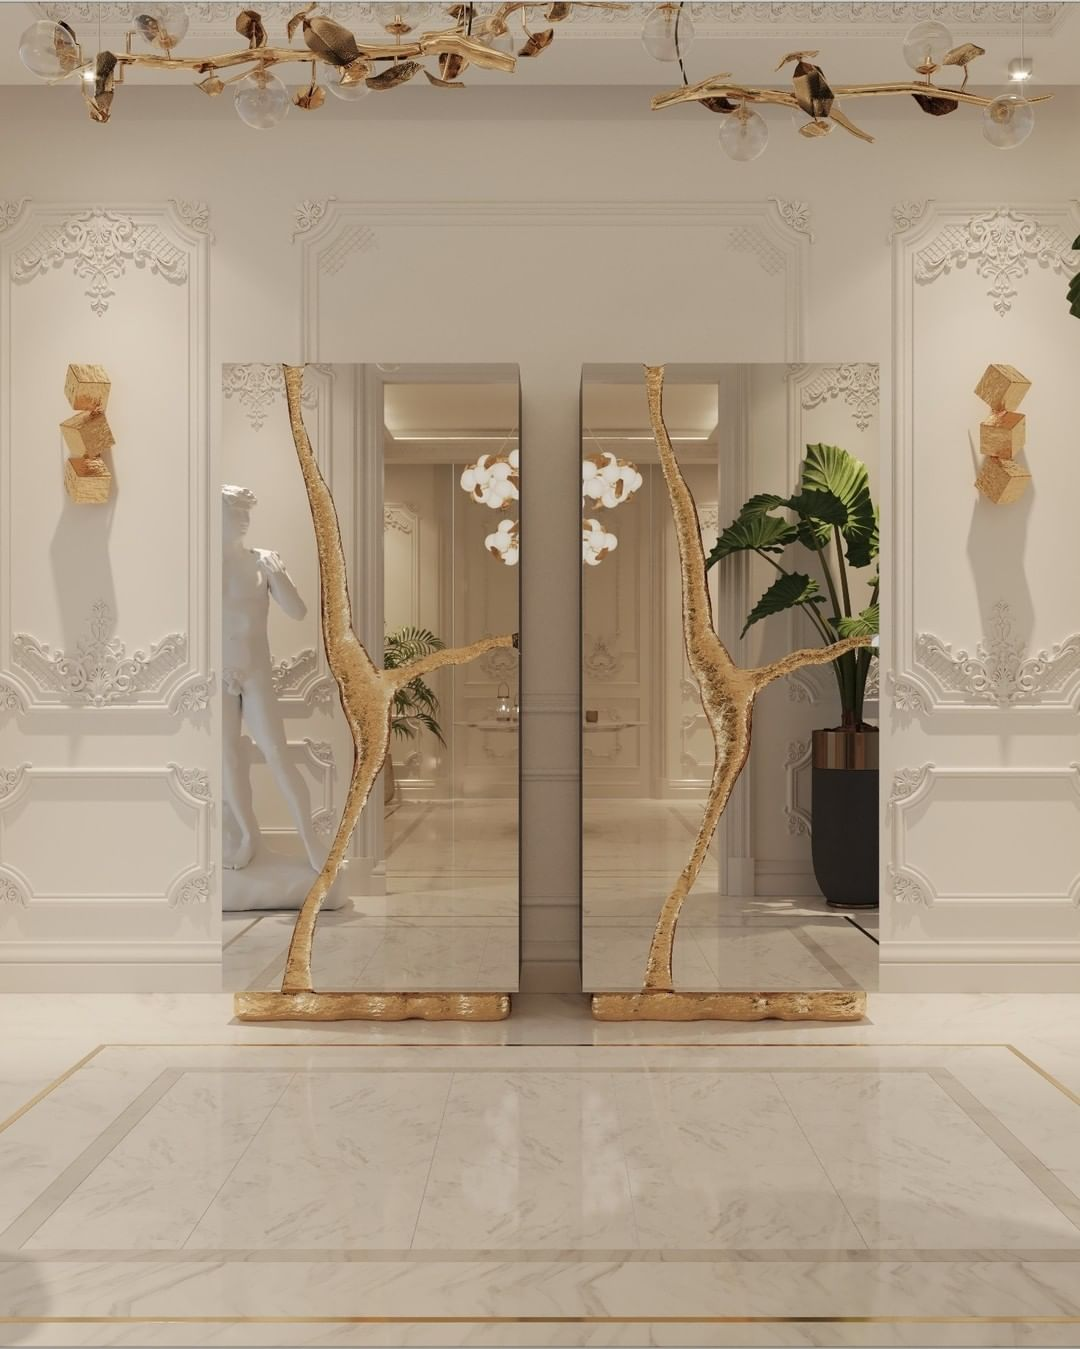 Hallway Decor for a Stunning Memorable Foyer hallway decorating Hallway decorating-fill the space with personality bl lapiaz handmade cabinet